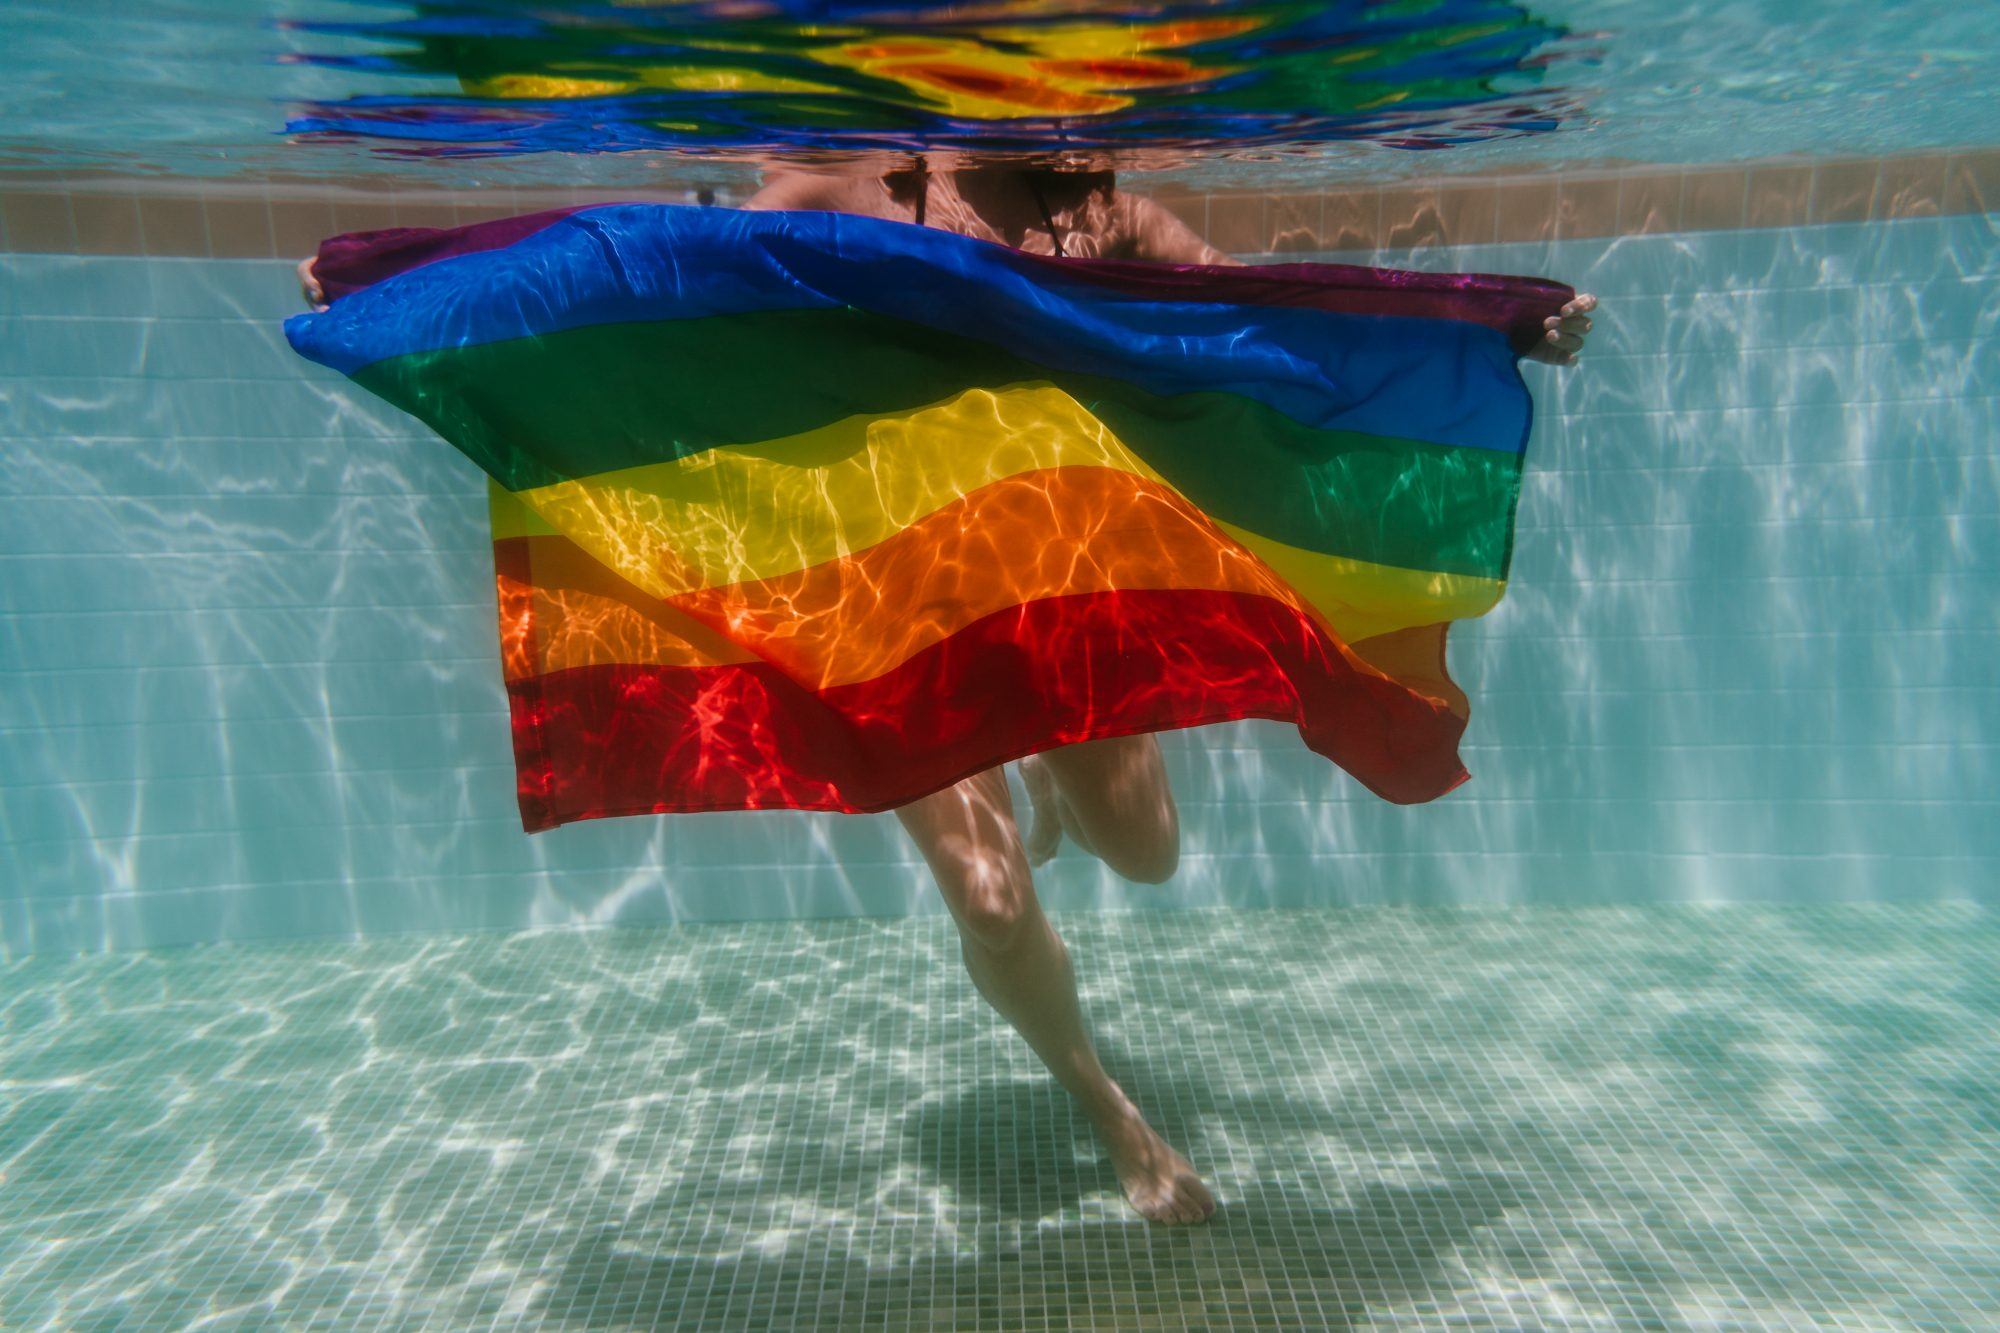 internalized-homophobia , young woman in a pool holding rainbow gay flag underwater.LGBTQ concept. Summertime